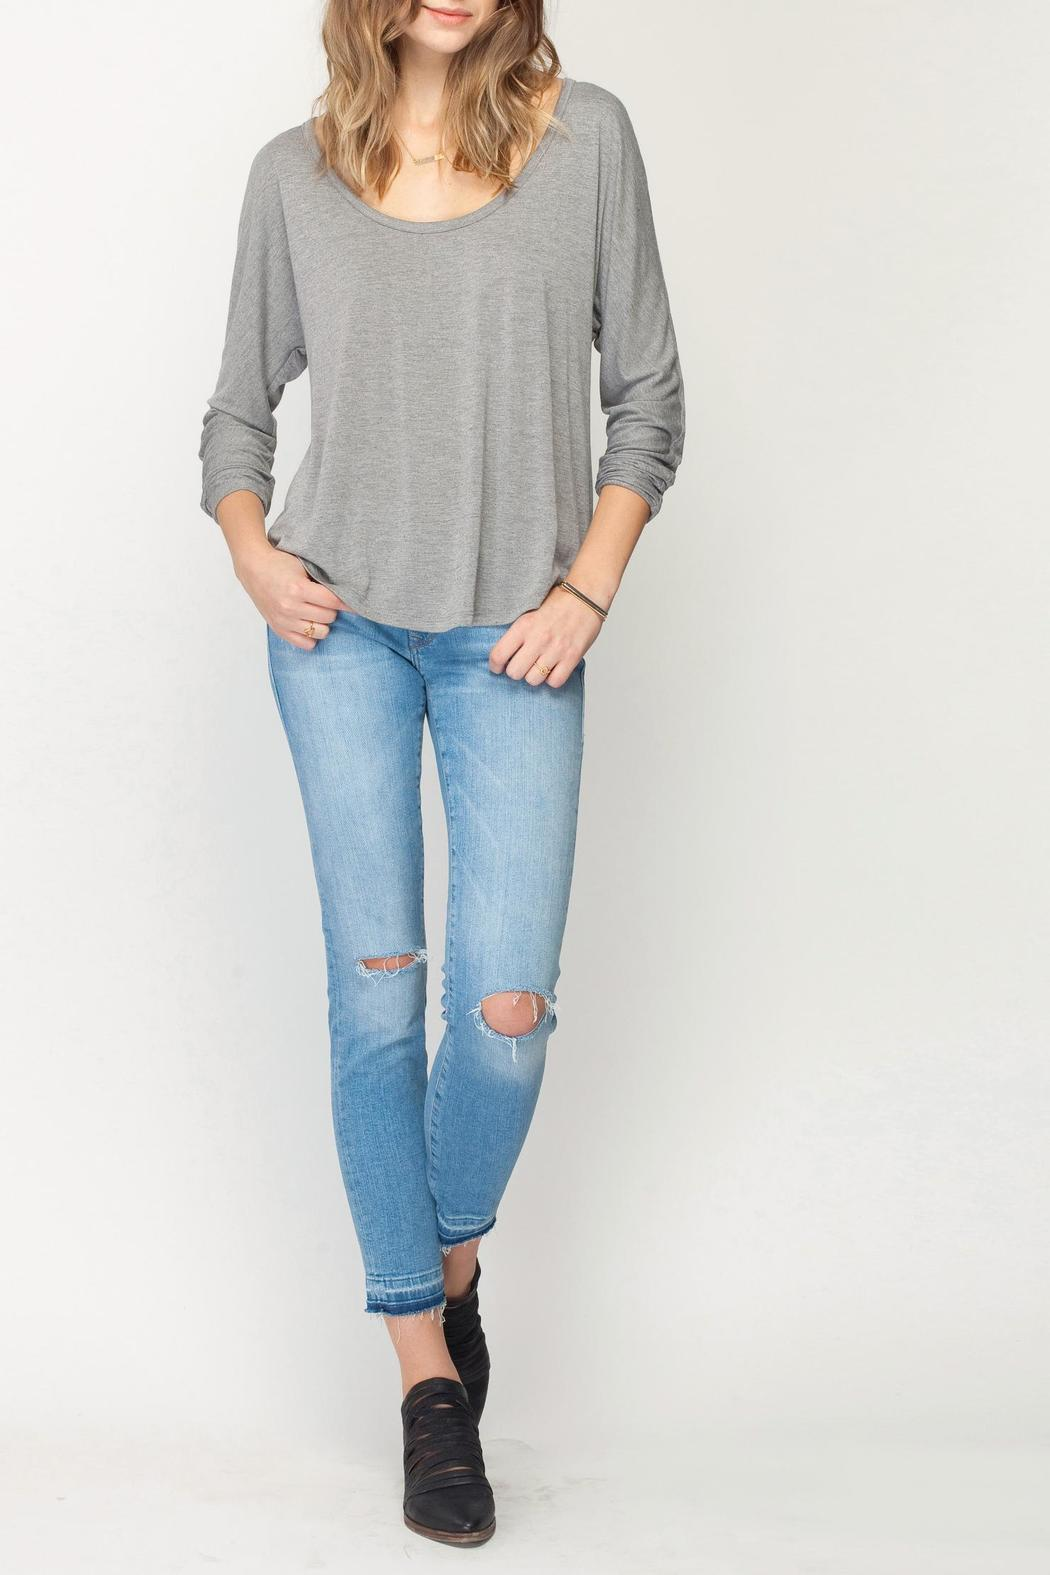 Gentle Fawn Heathered Felicity Top - Front Full Image